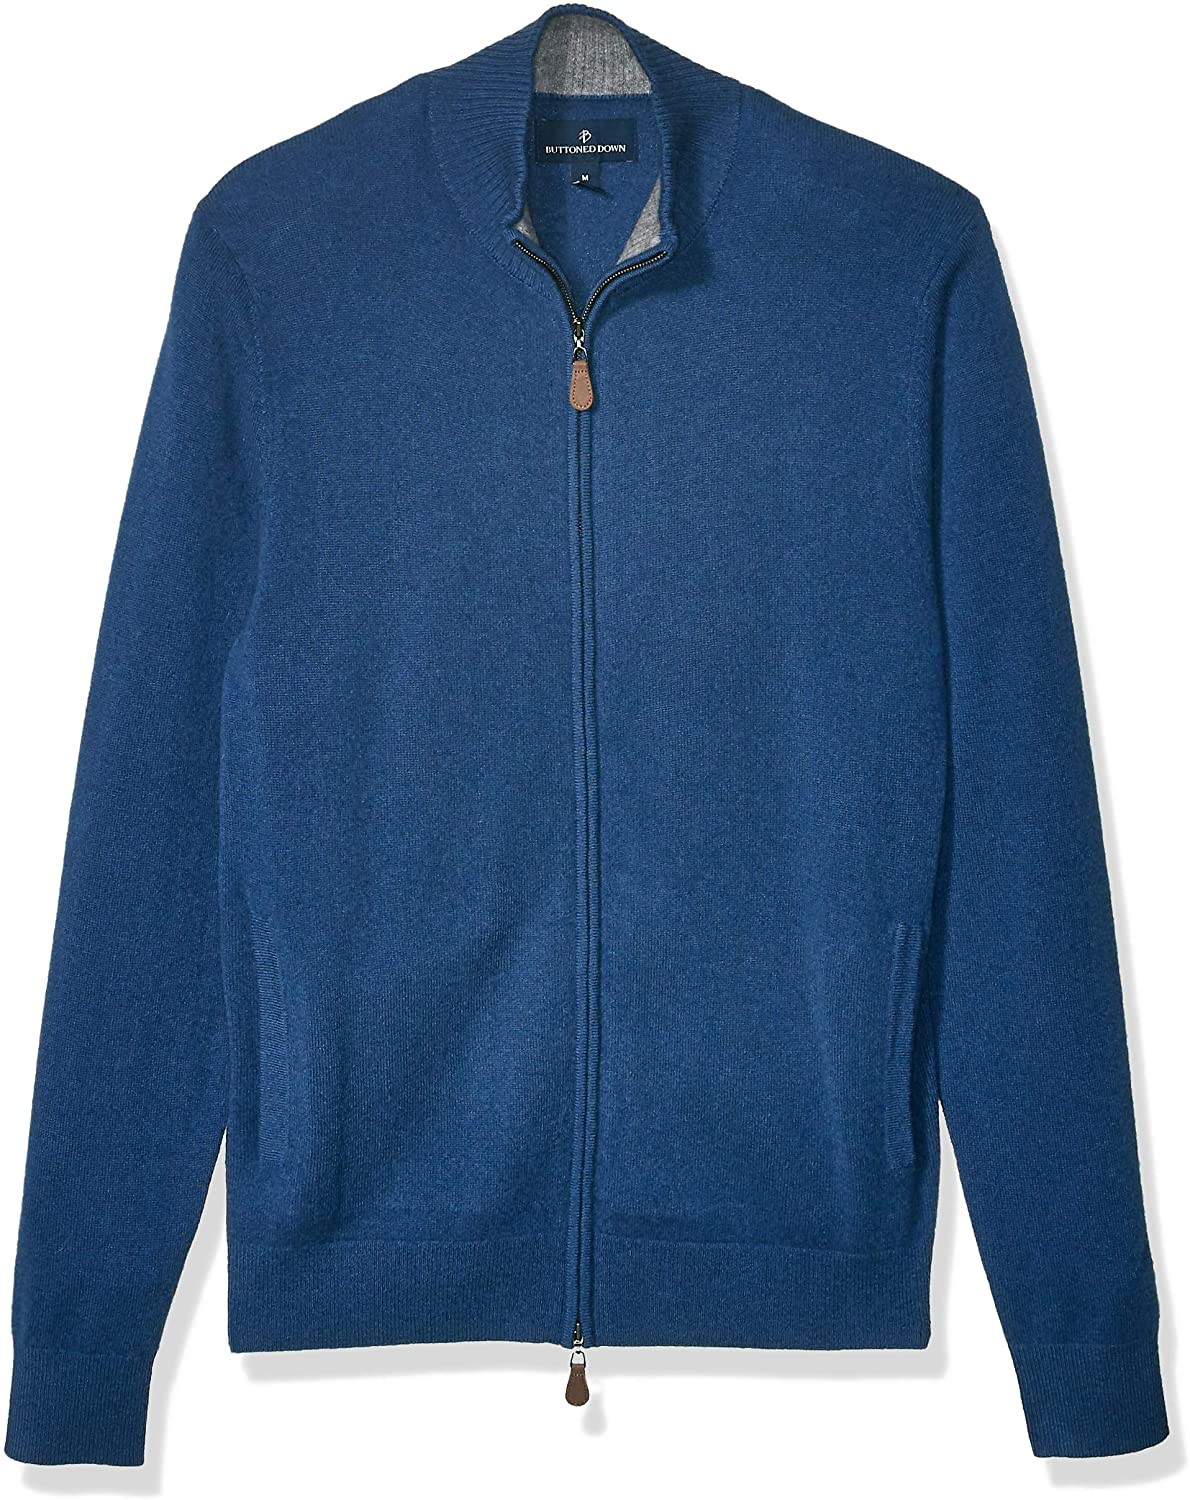 Selling rankings Buttoned Down Men's Full-Zip Selling rankings Sweater Cashmere